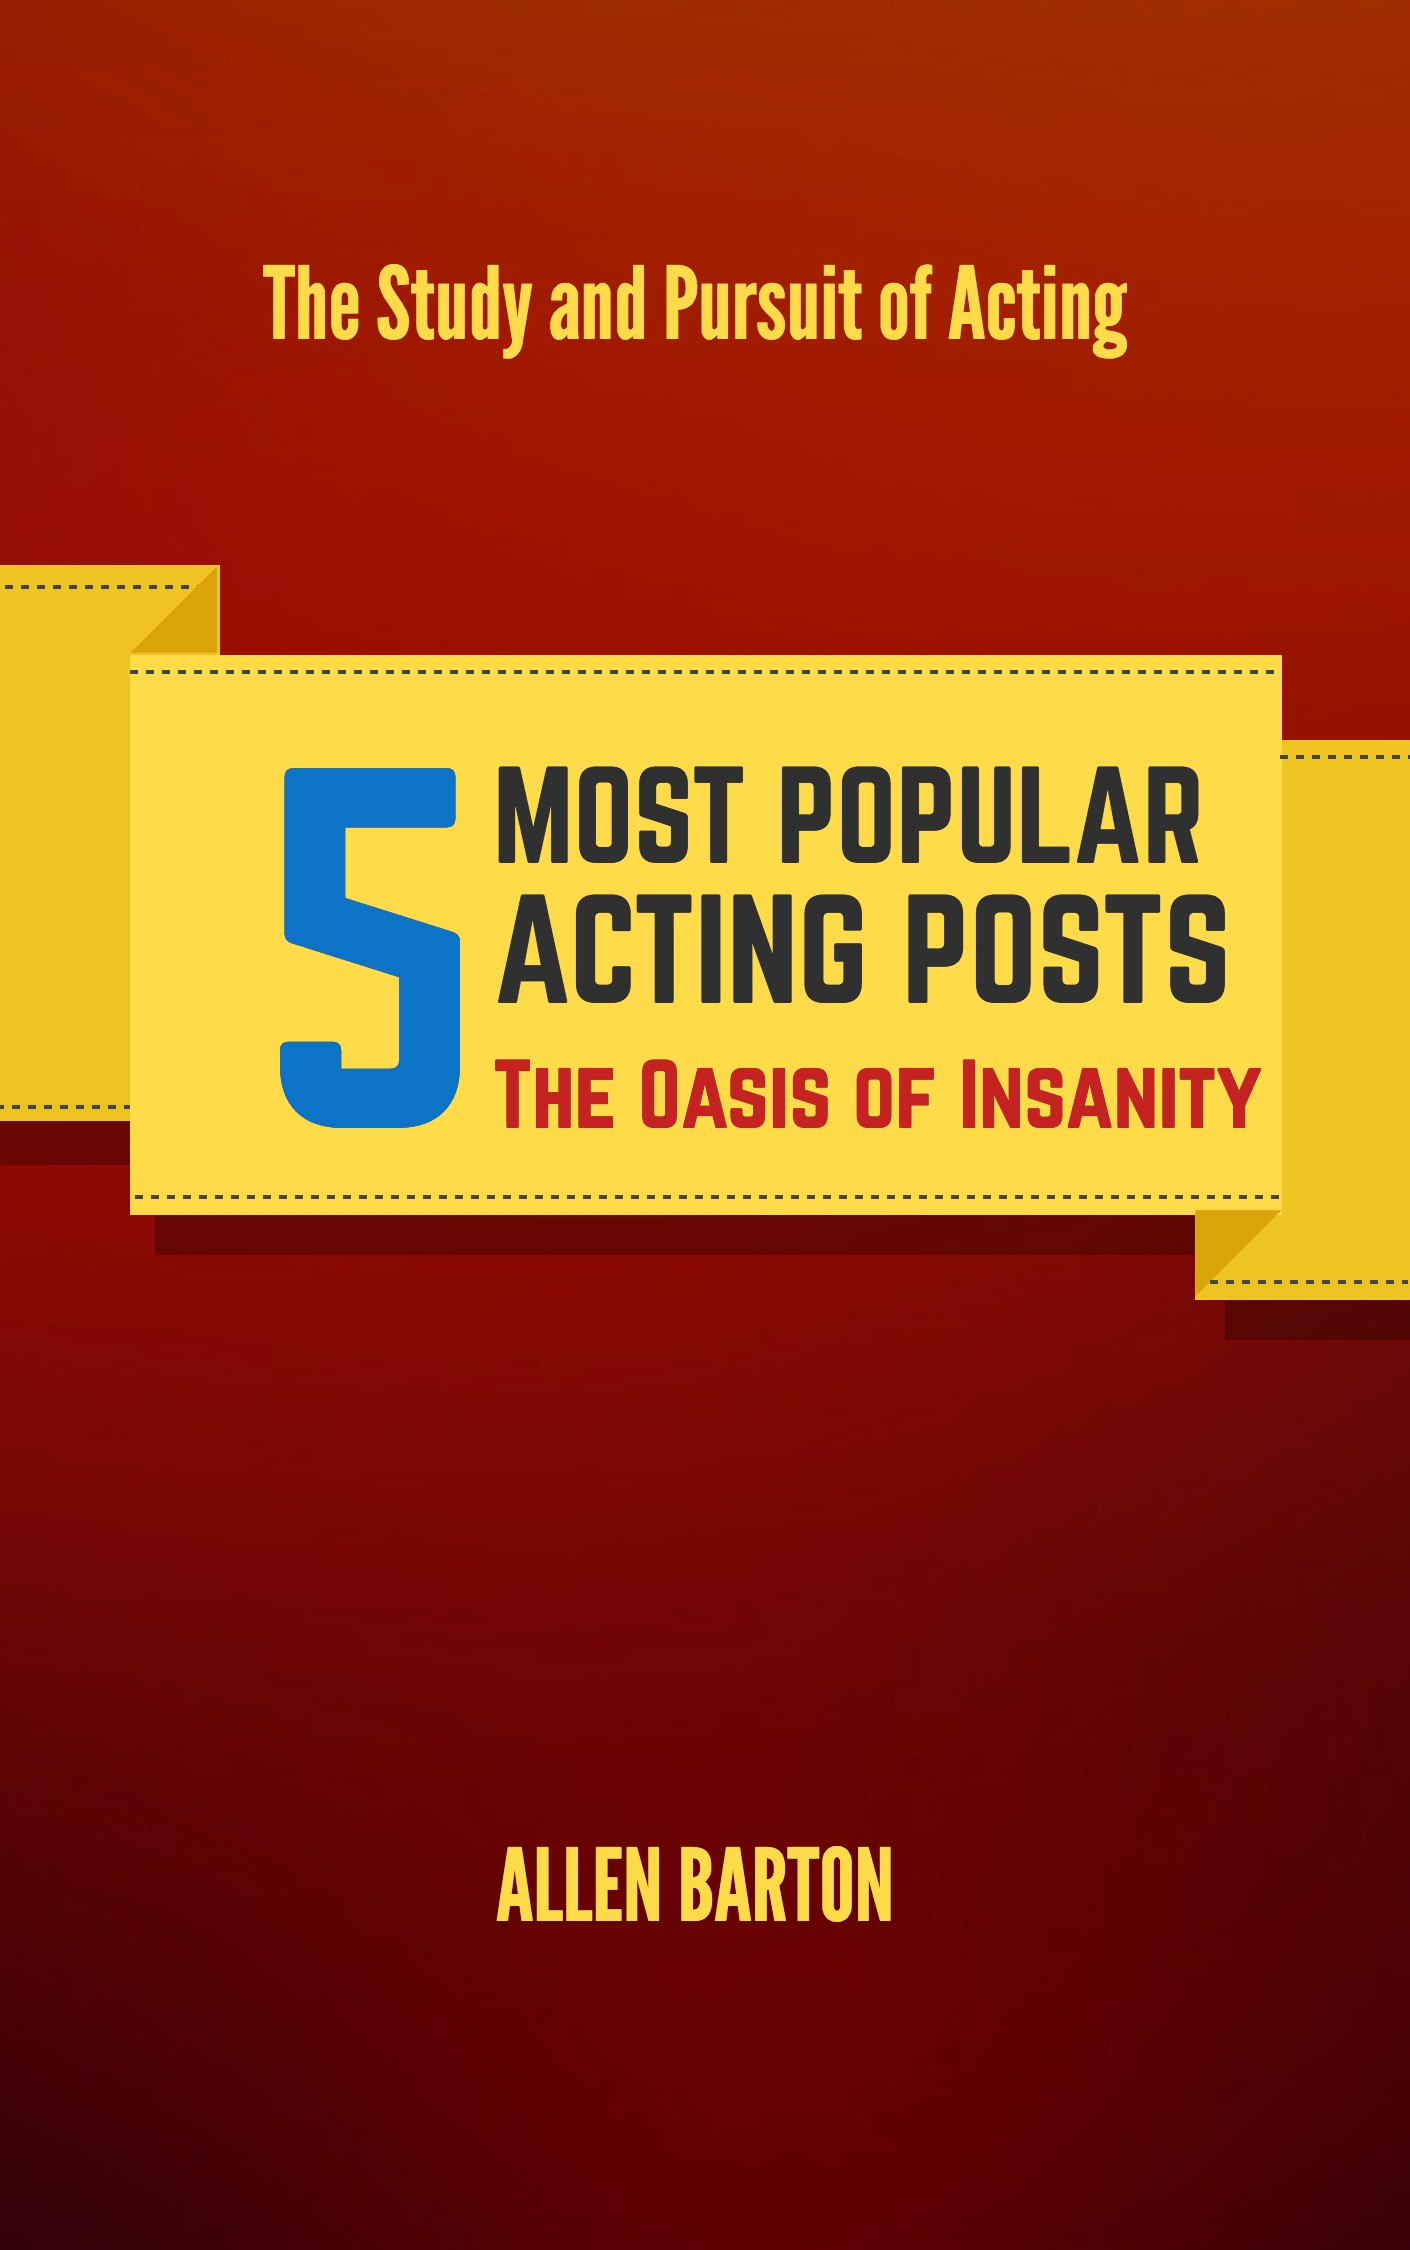 5 Most Popular Acting Posts